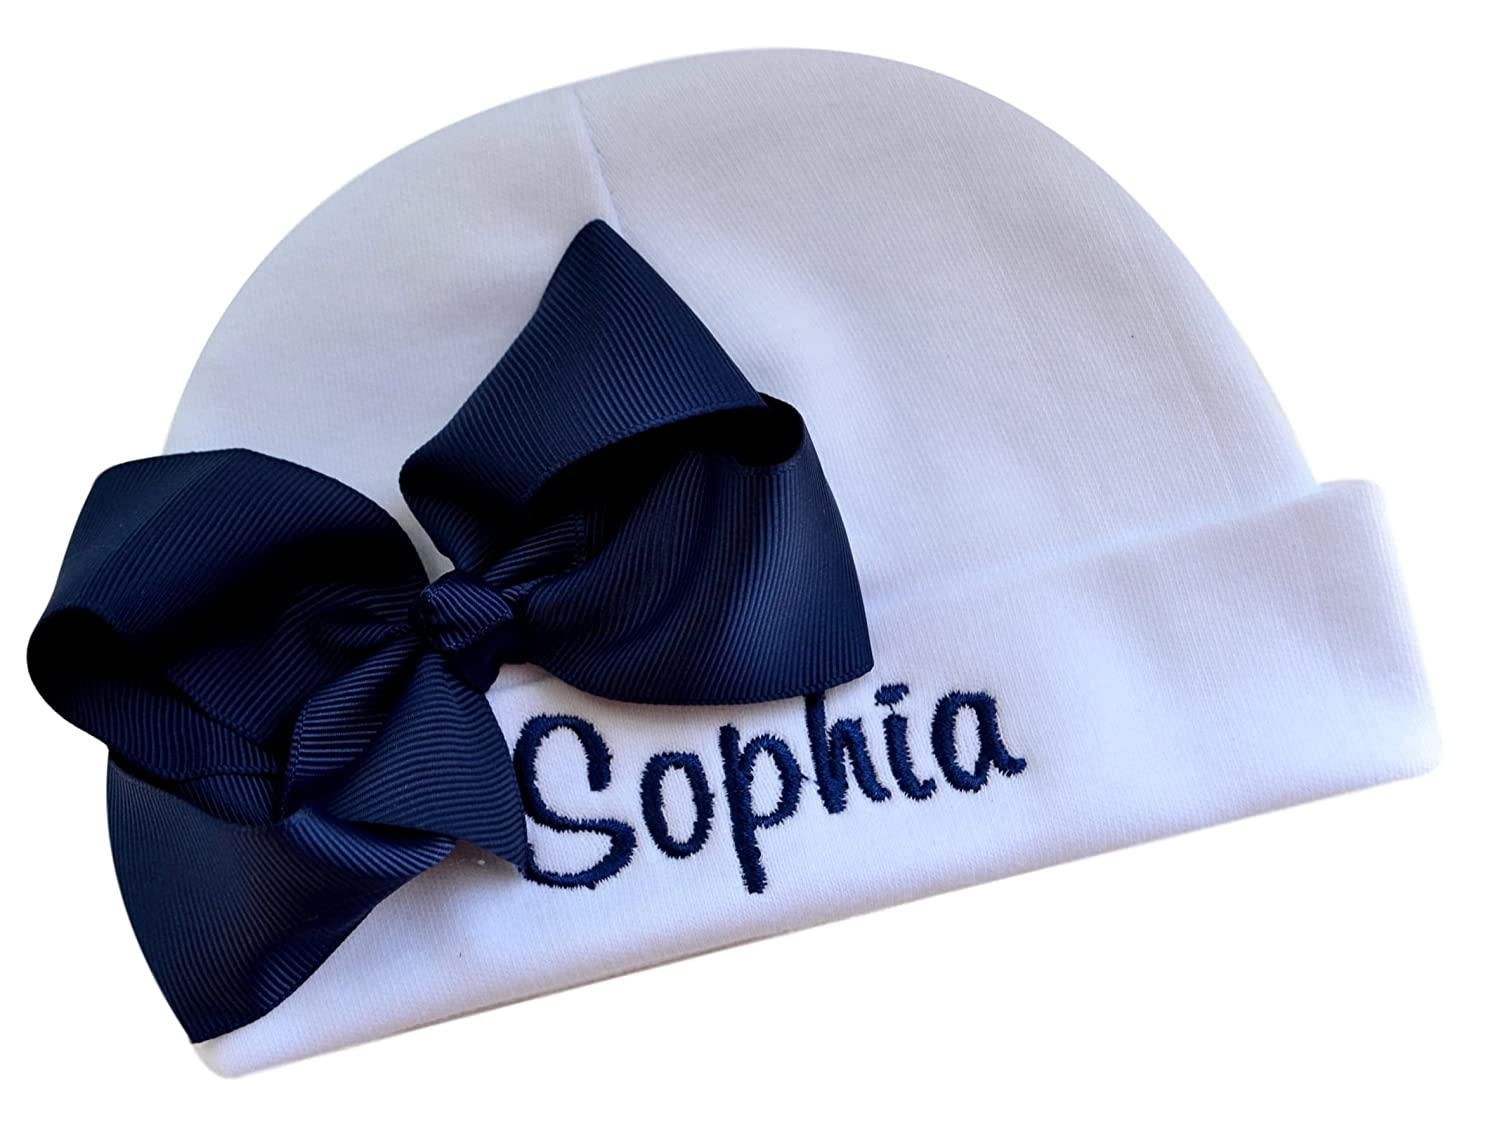 Personalized Embroidered Baby Girl Hat with Grosgrain Bow with Custom Name embhatgrosgbow-fgd-15